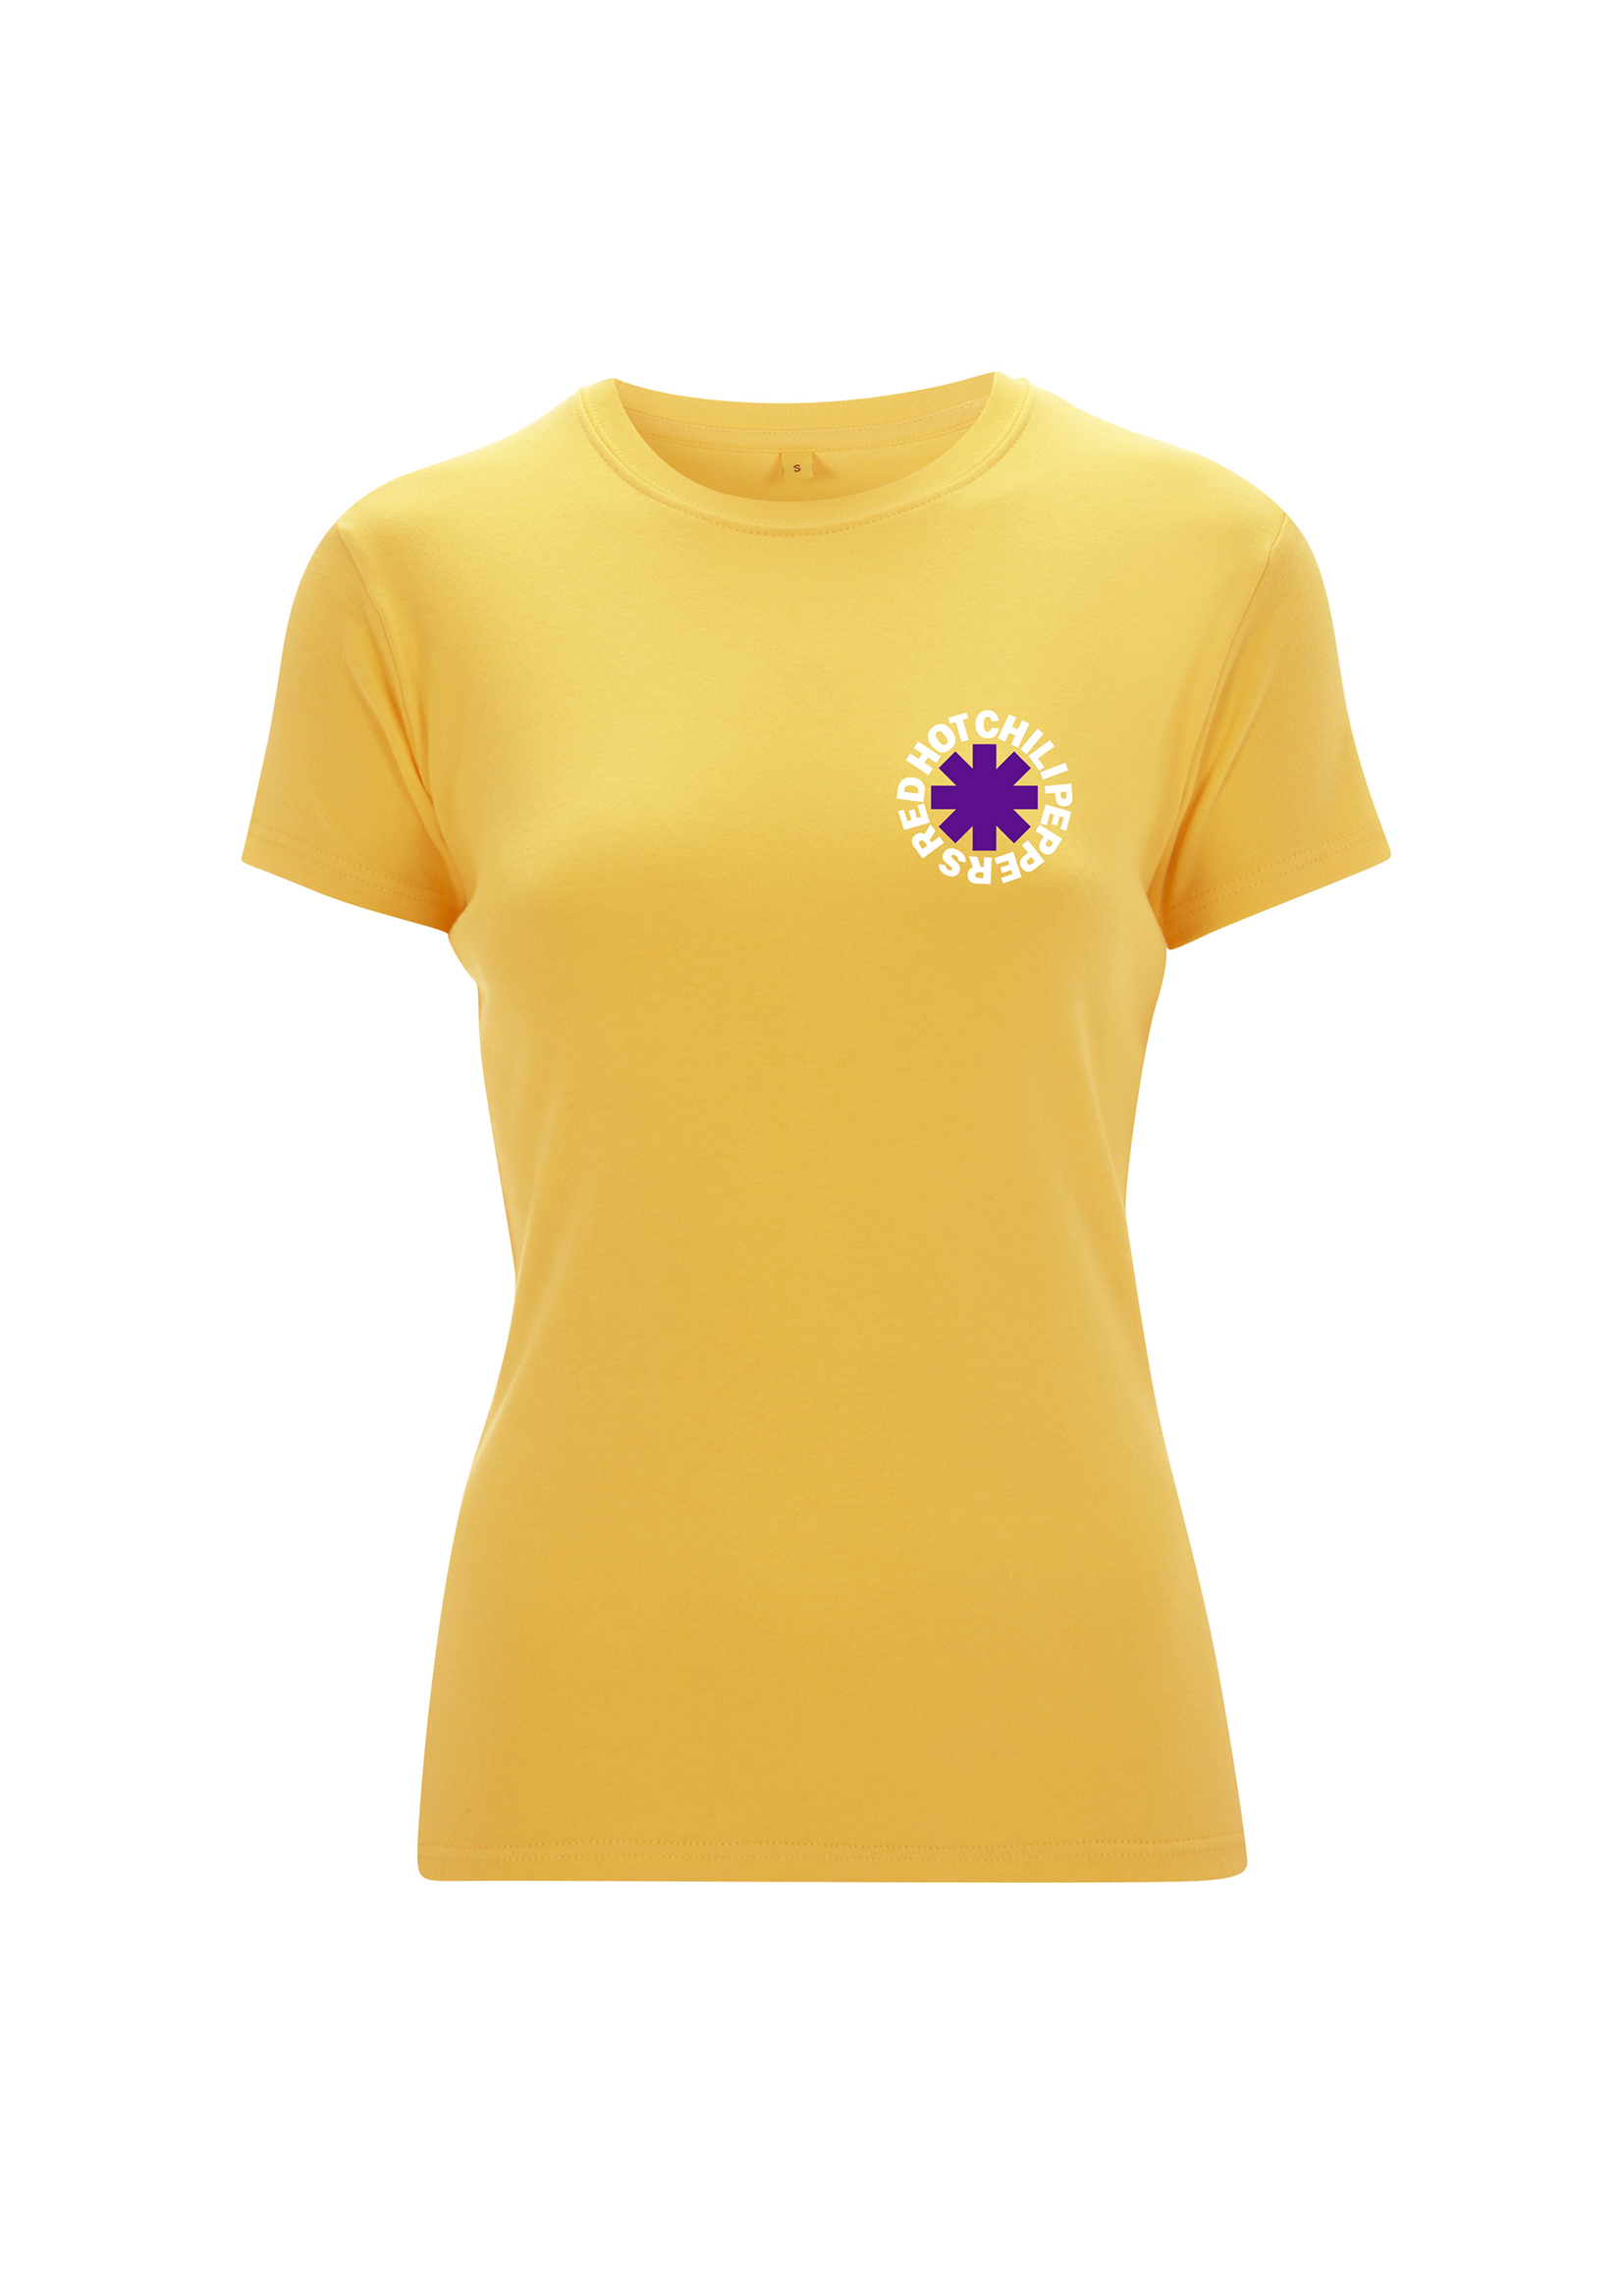 Los Chili - Yellow Ladies Tee - Red Hot Chili Peppers